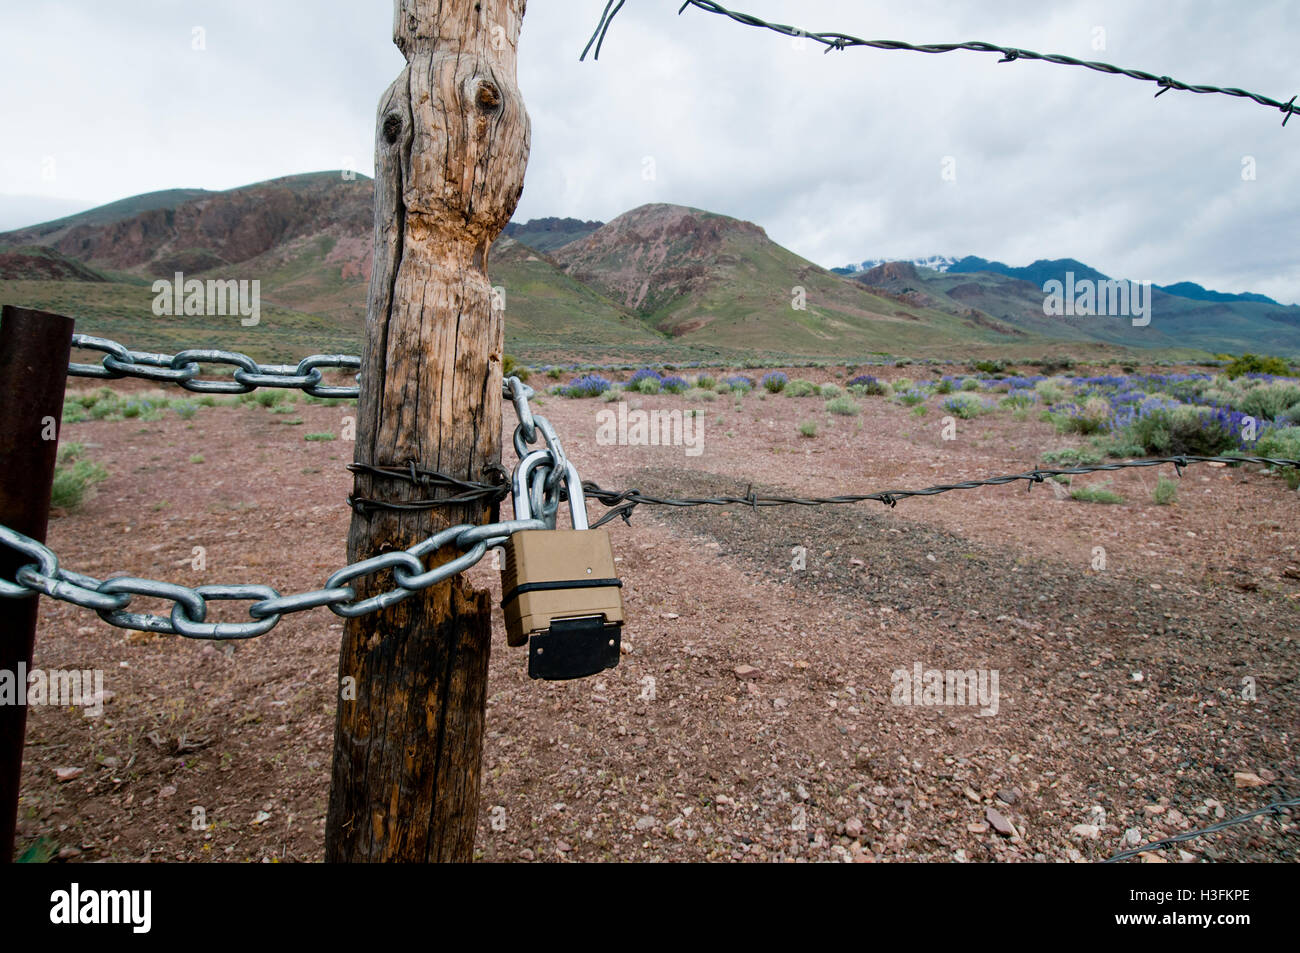 Locked gate blocking access to public land in eastern Oregon - Stock Image